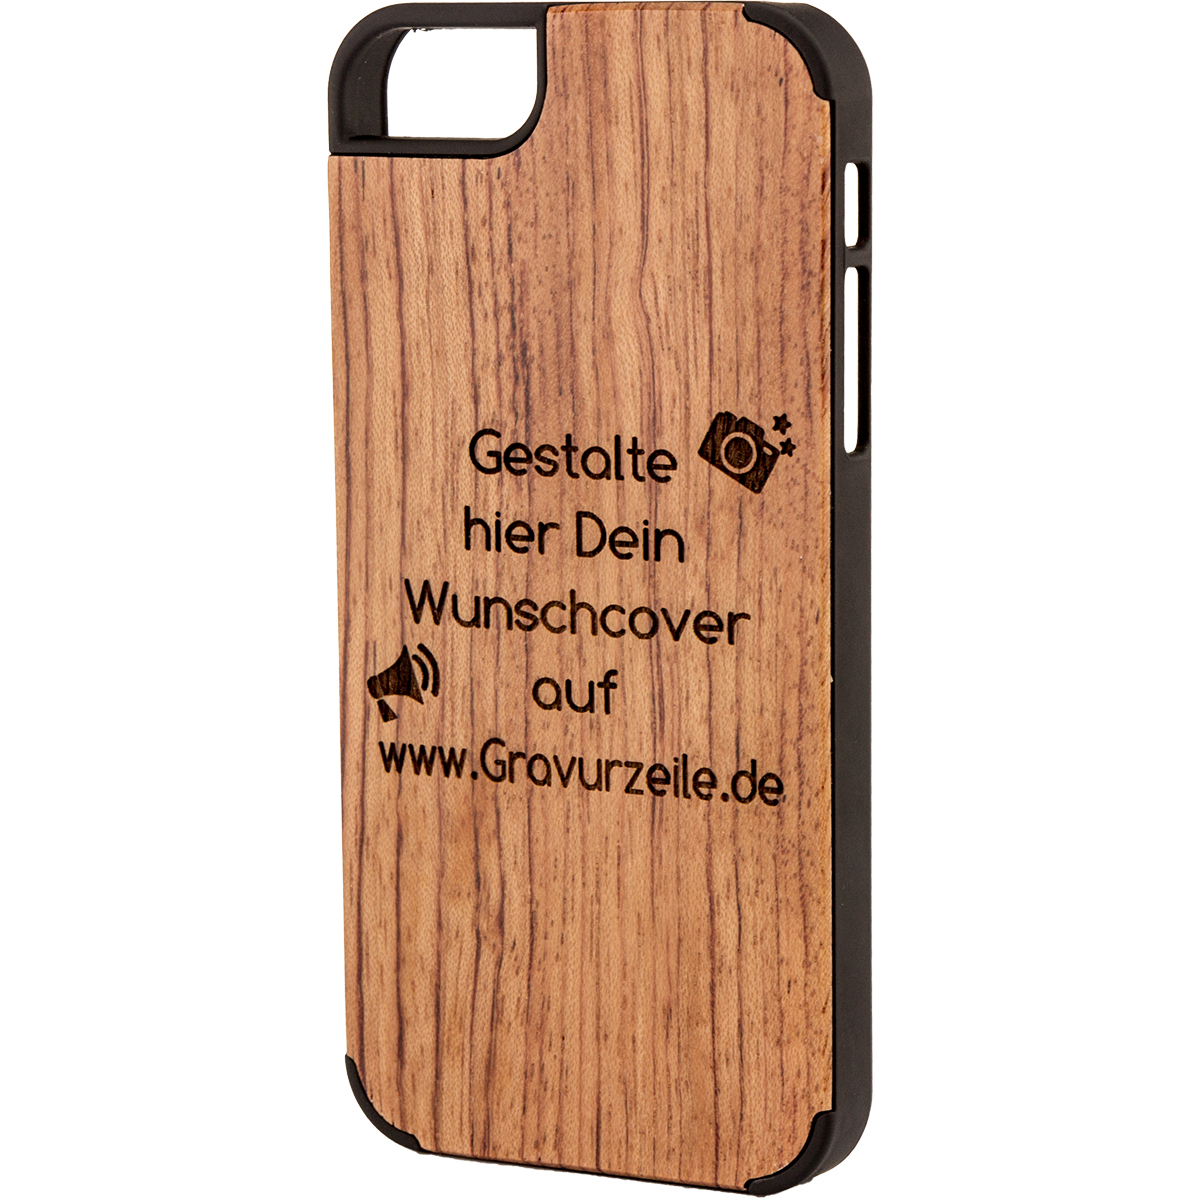 handy cover iphone 5 aus holz mit gravur einfach pers nlich. Black Bedroom Furniture Sets. Home Design Ideas